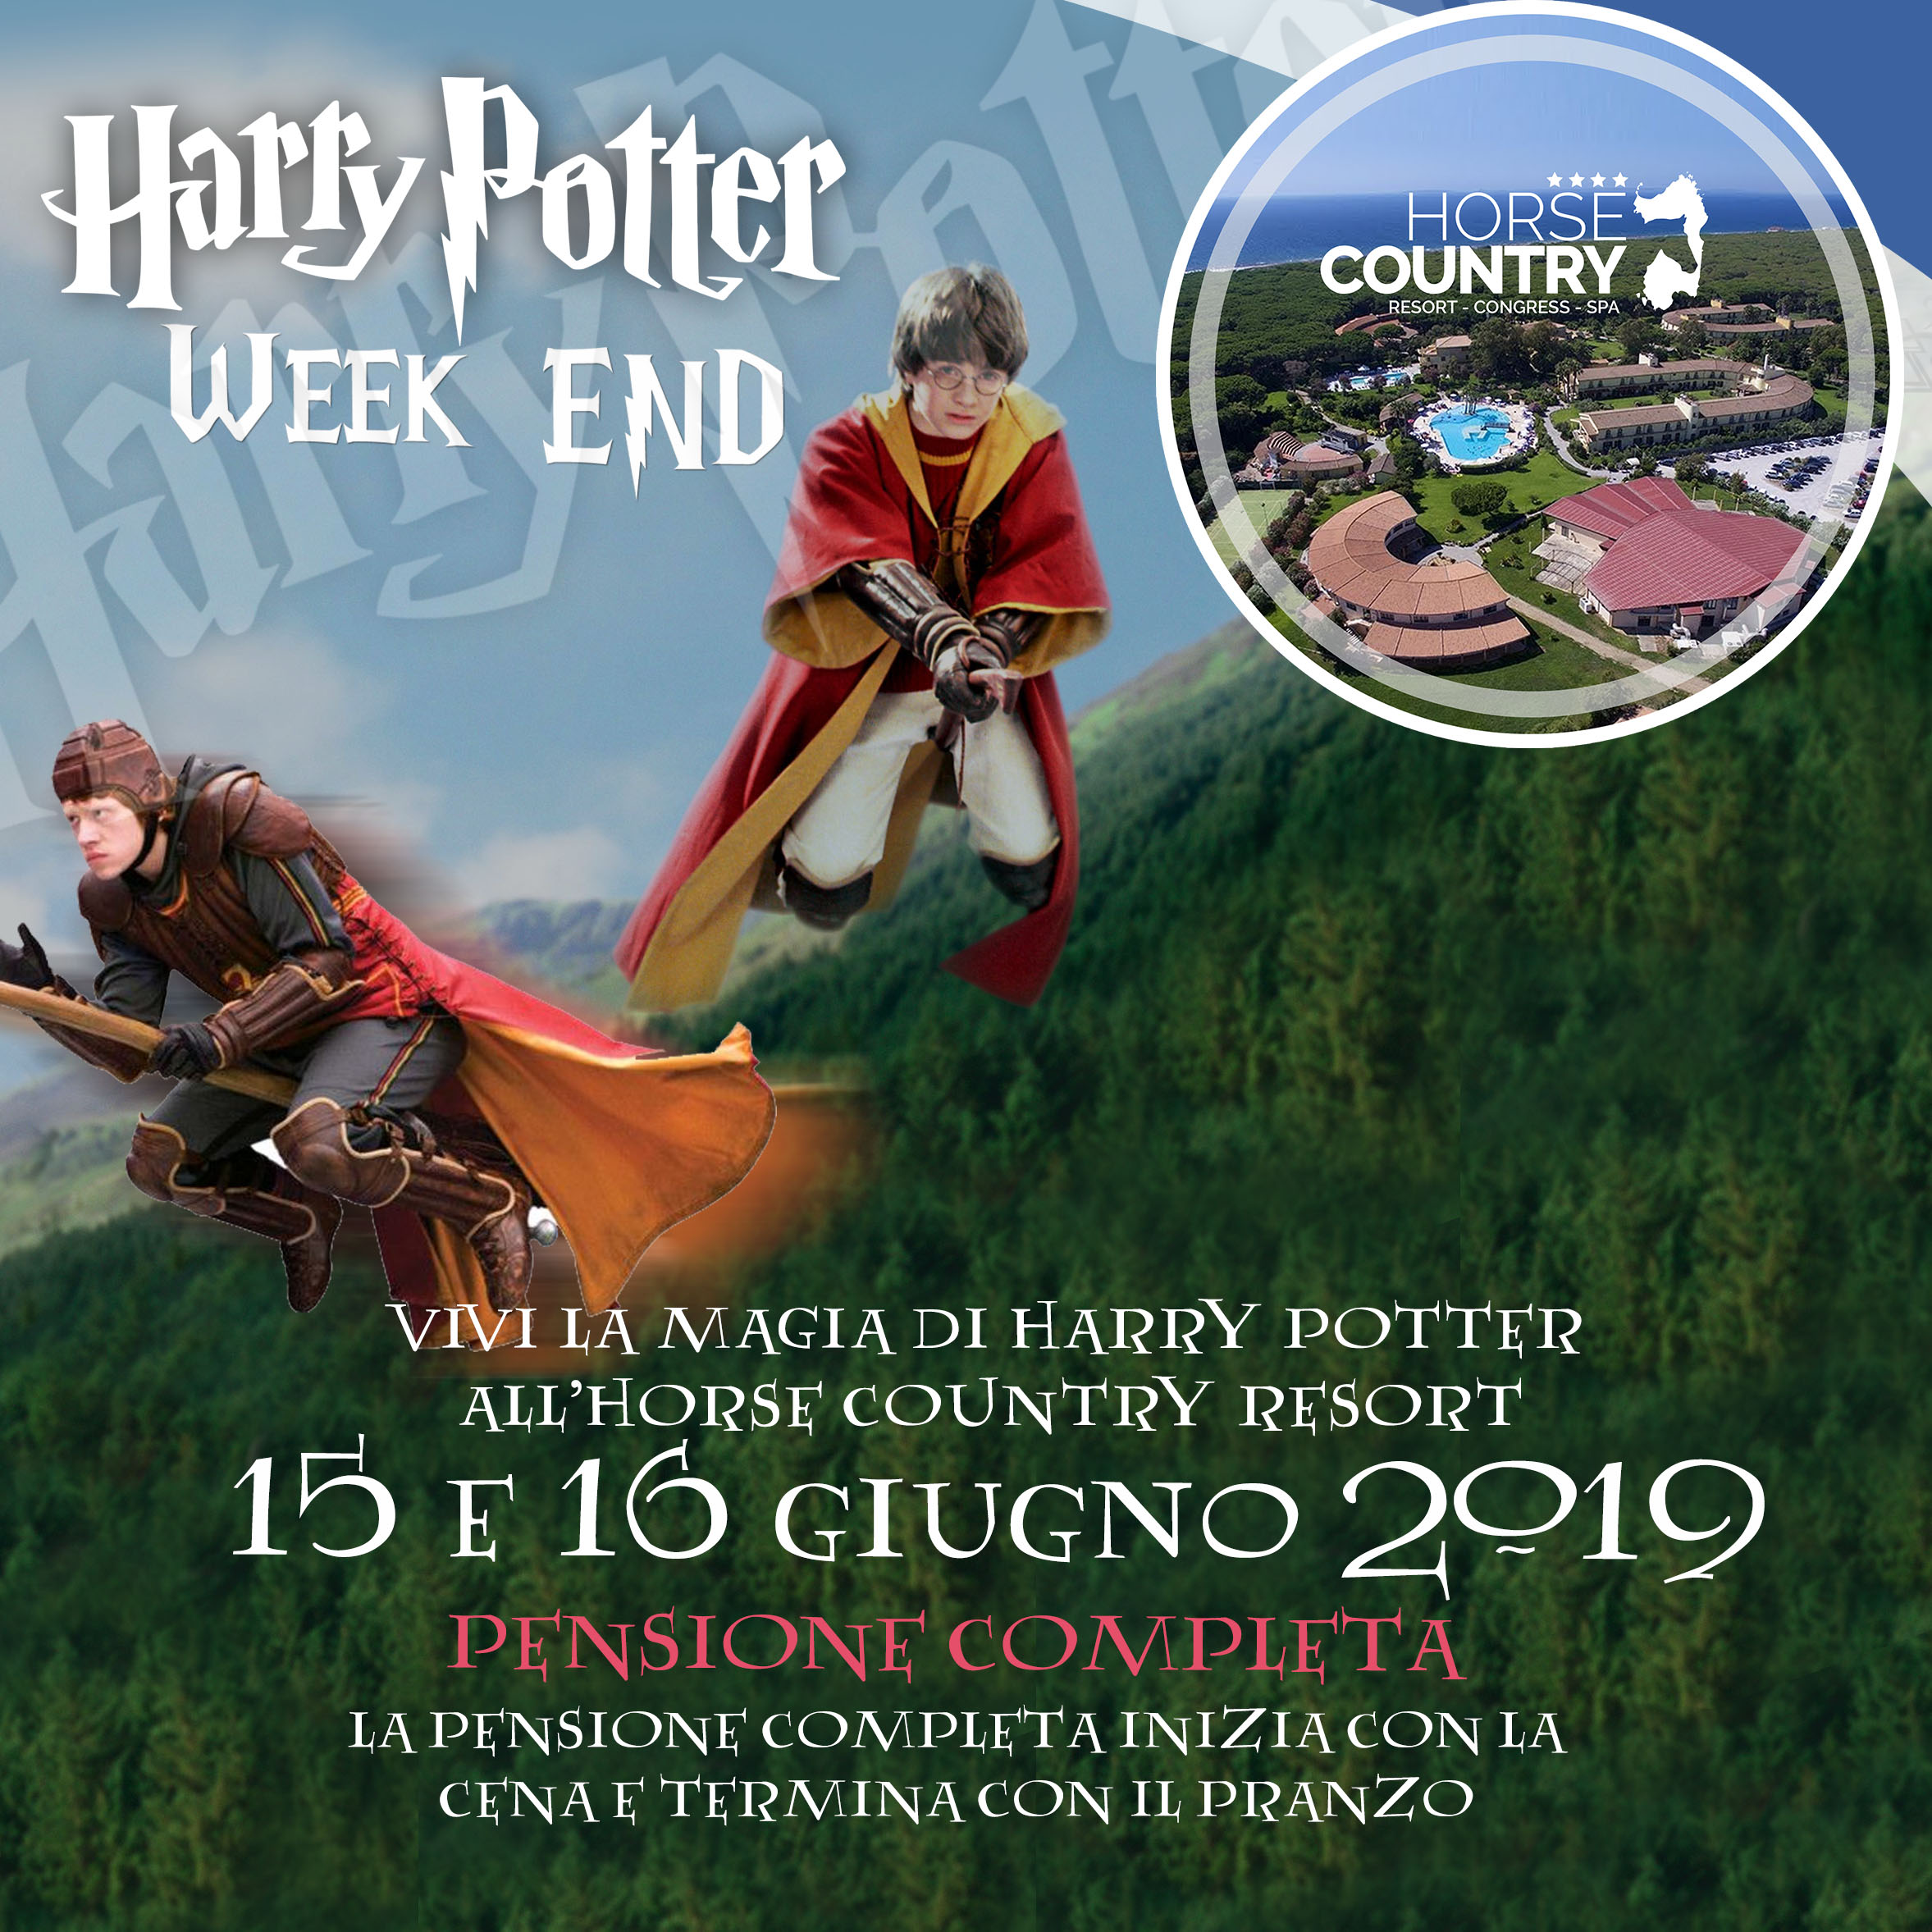 Weekend di Harry Potter